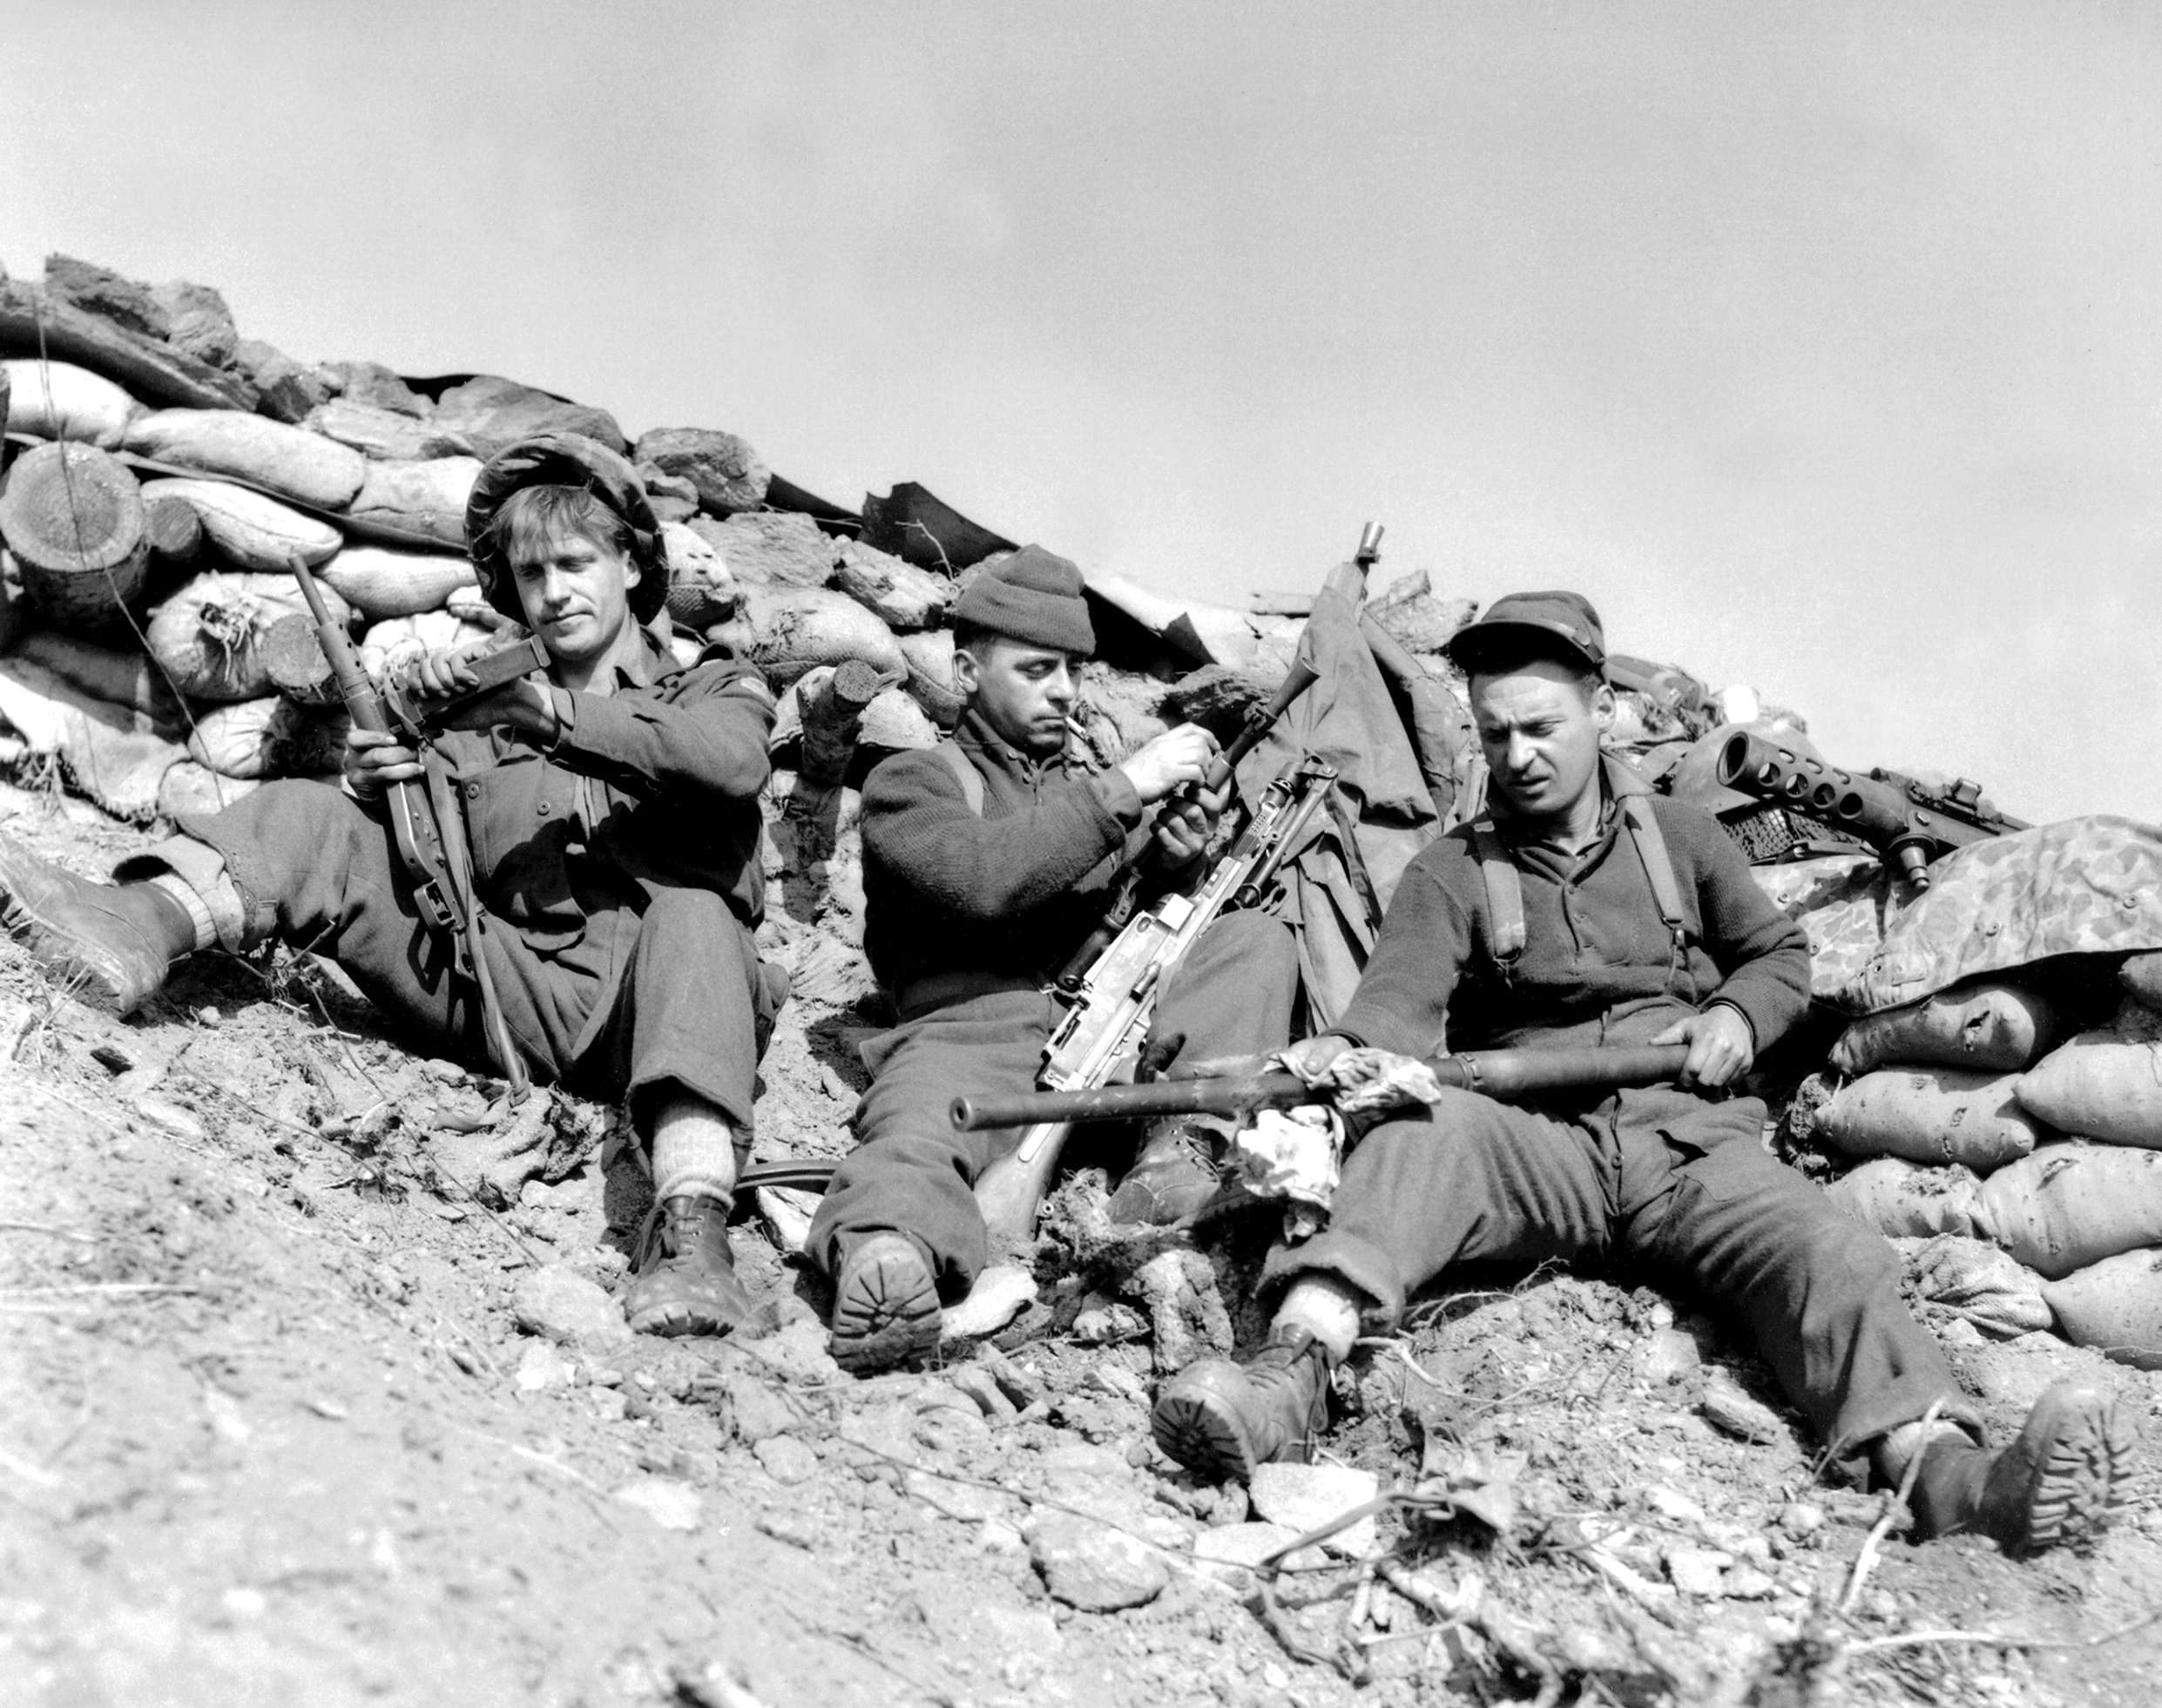 Between 1950-53, over 26,000 Canadian soldiers, sailors and airmen fouight in the Korean War; of those, 516 gave their lives. (library and archives of Canada)